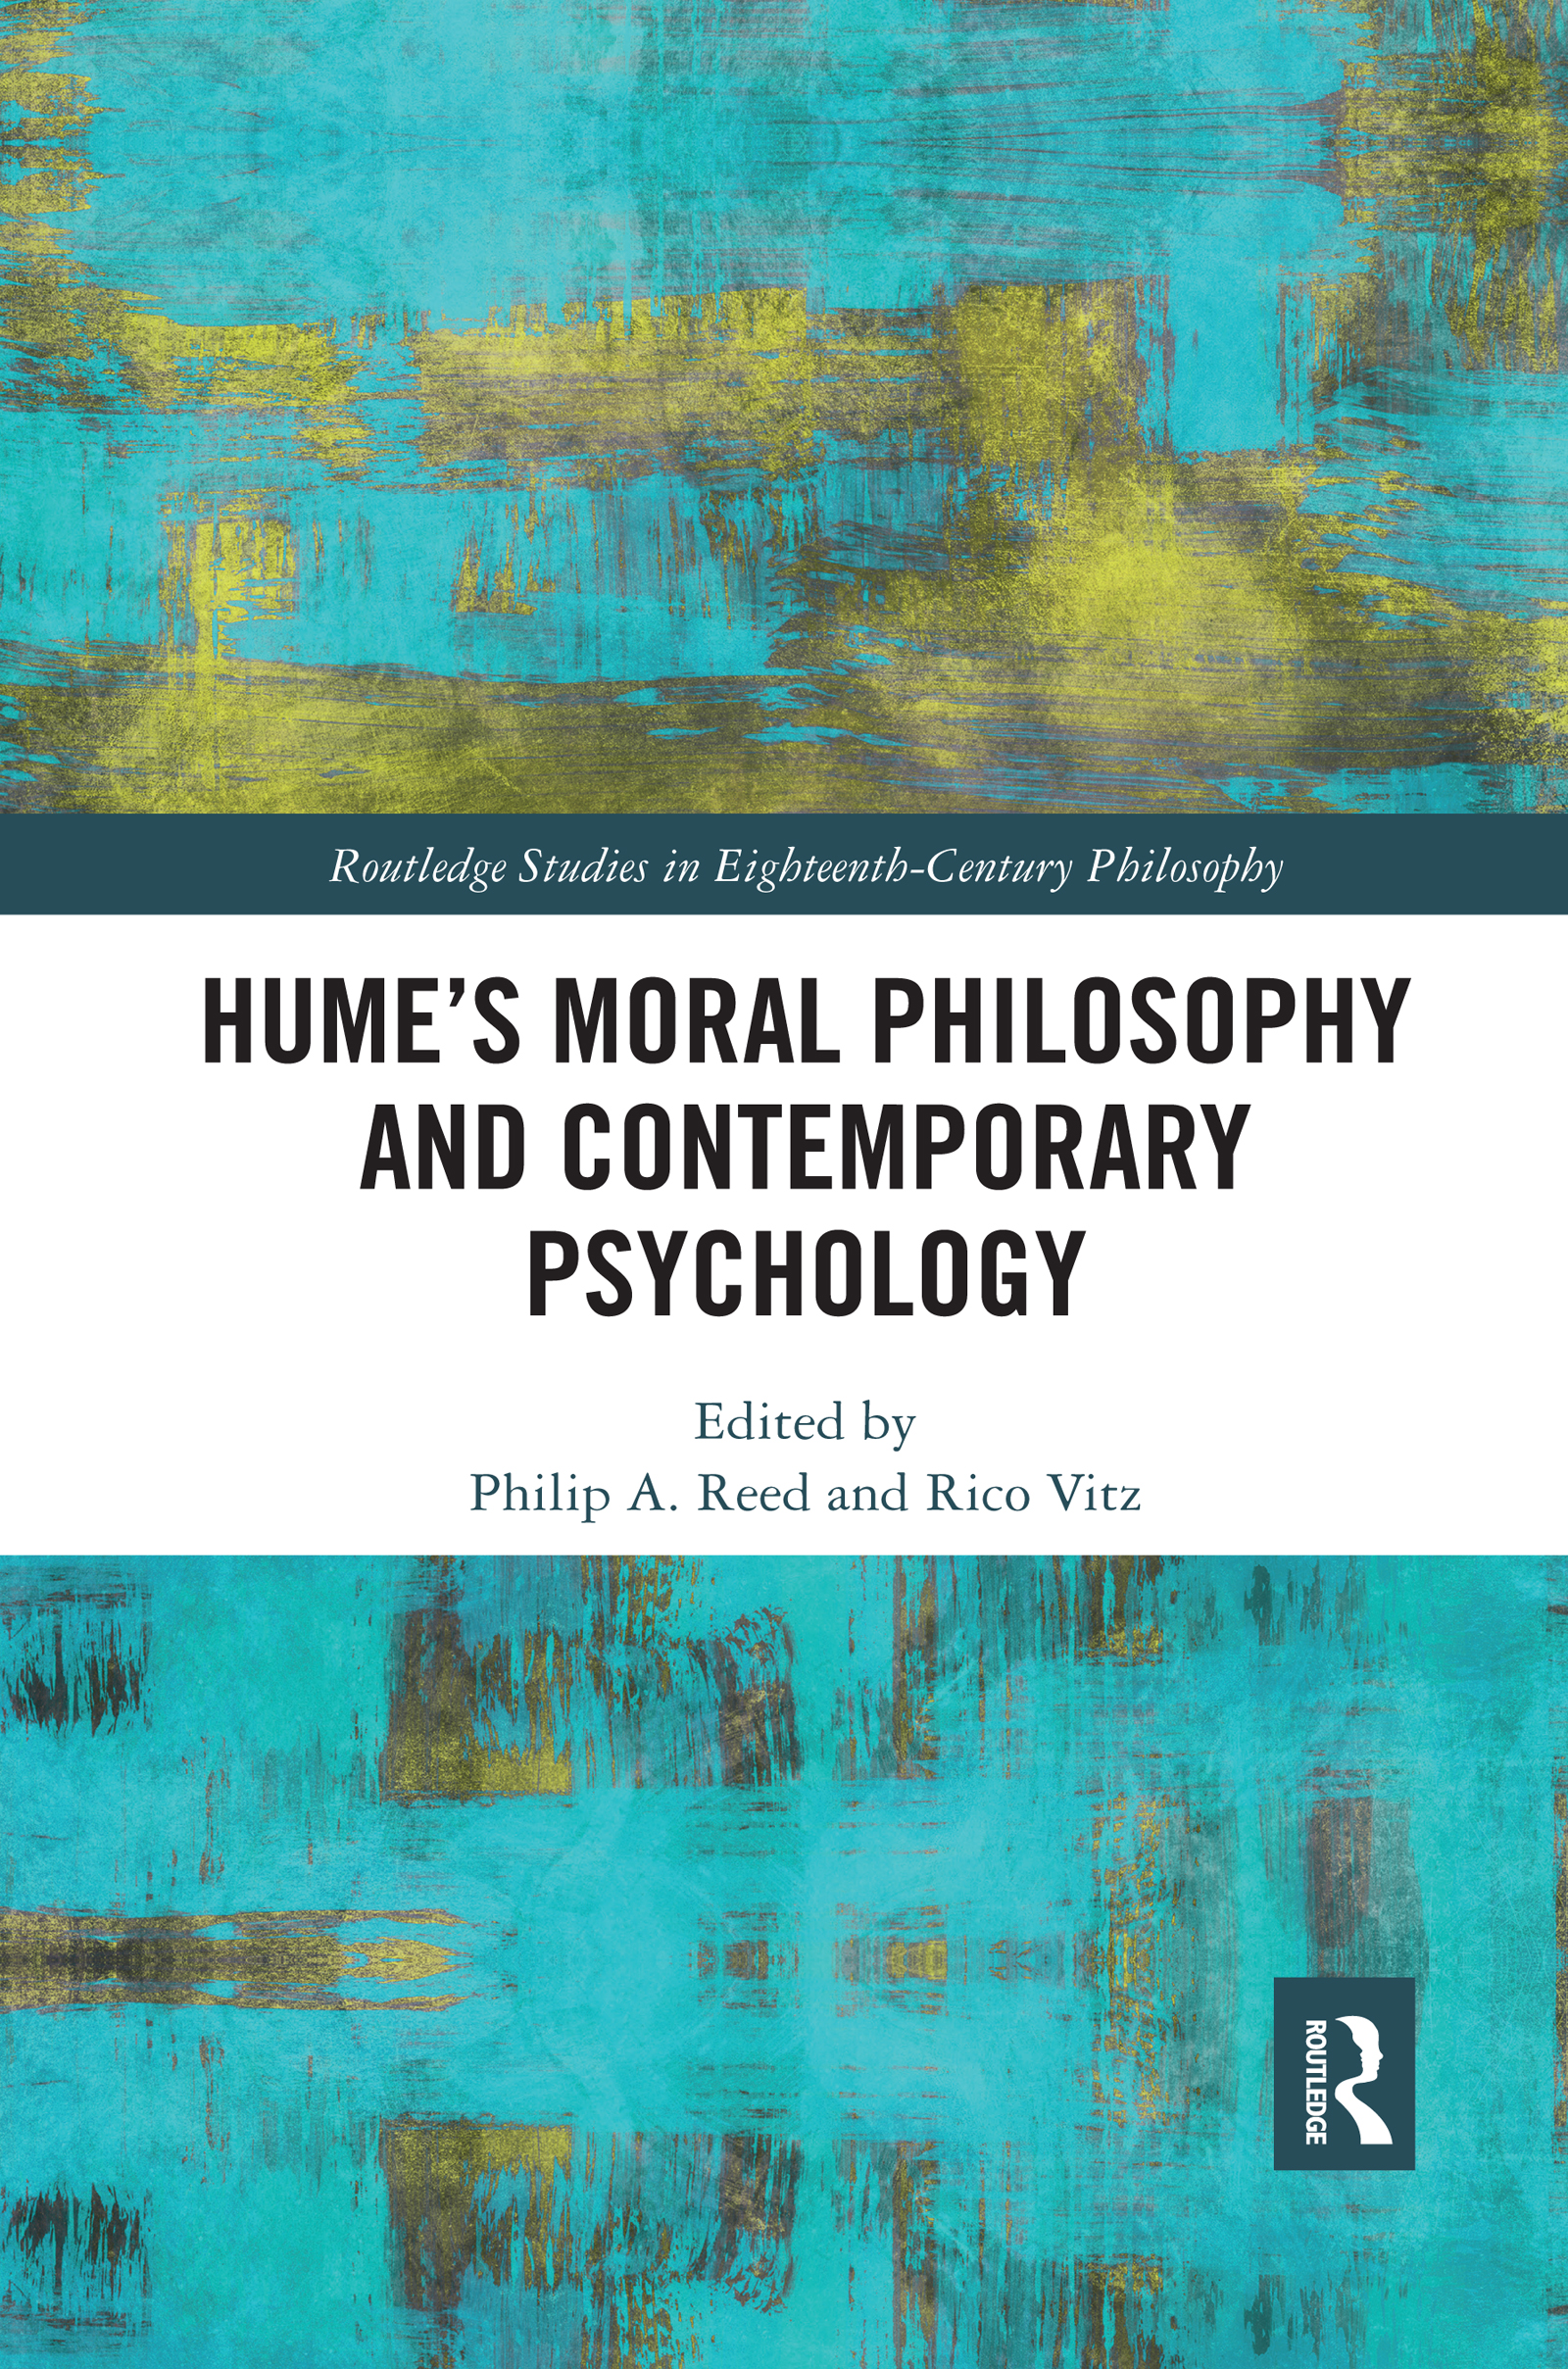 Hume's Moral Philosophy and Contemporary Psychology